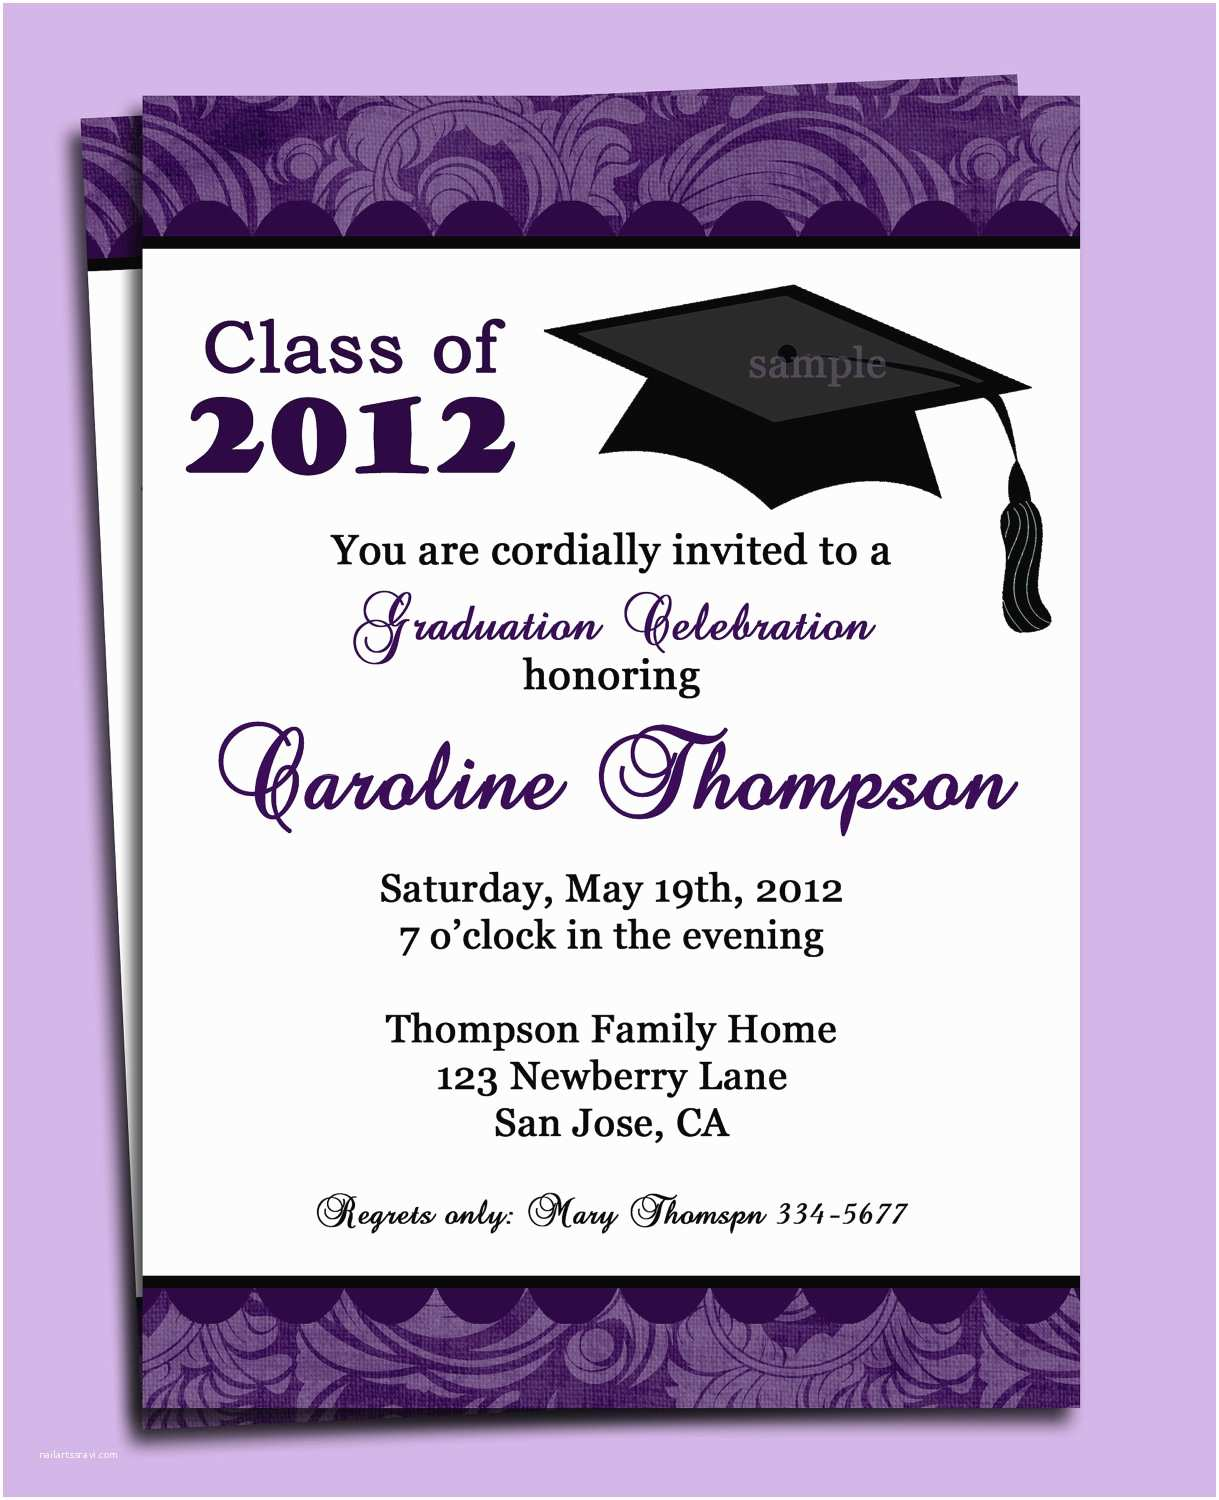 Graduation Party Invitations Ideas Graduation Party Invitation Wording